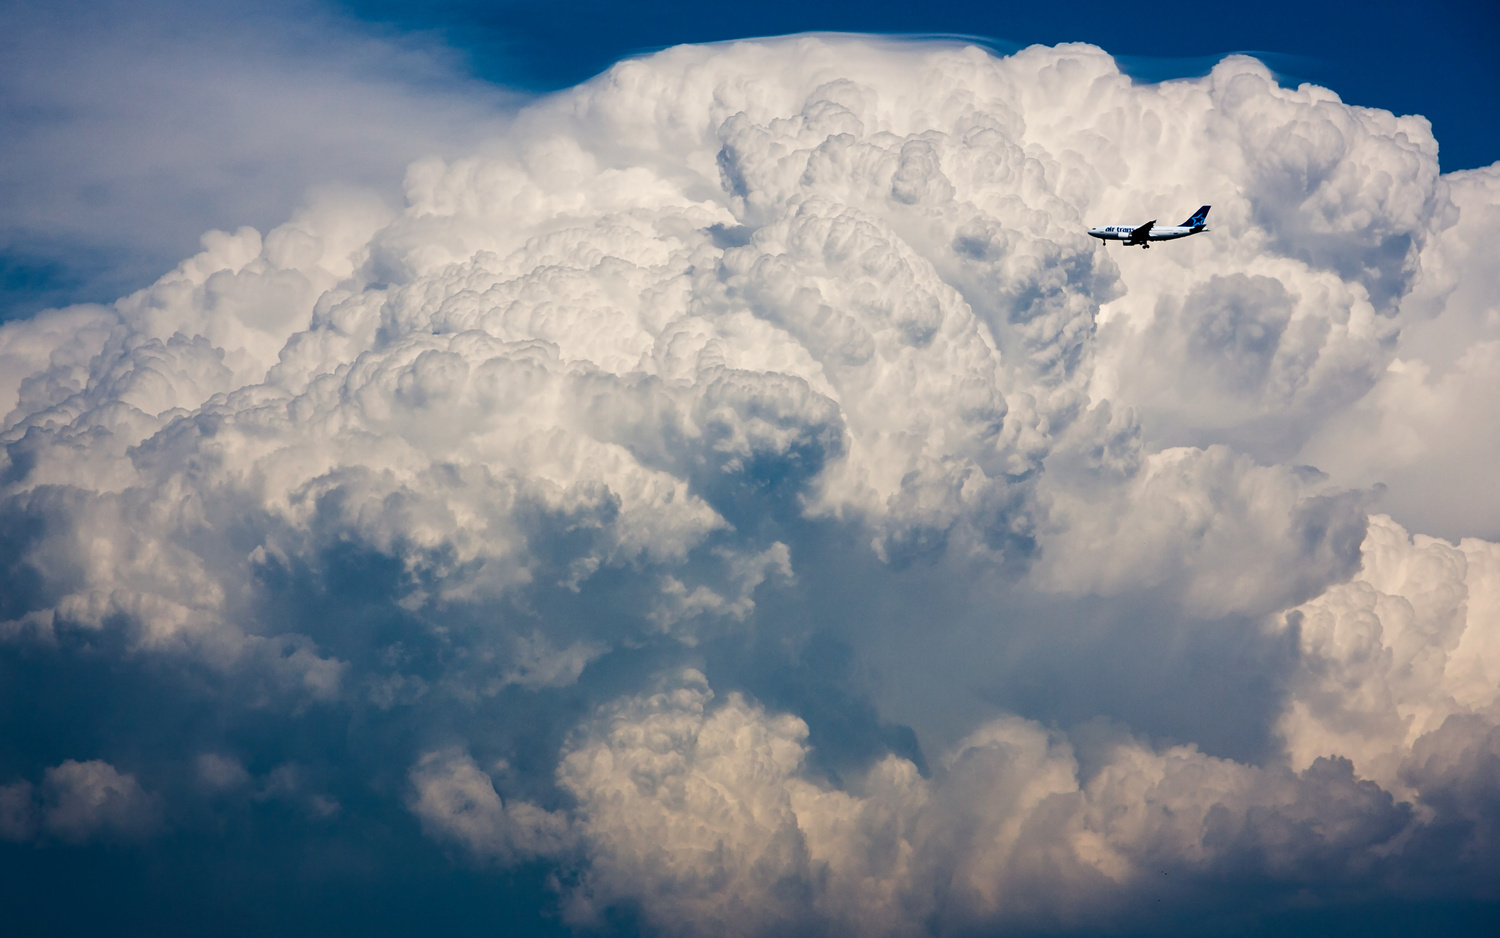 Air Transat vs The Storm Cloud by Philippe Clairo